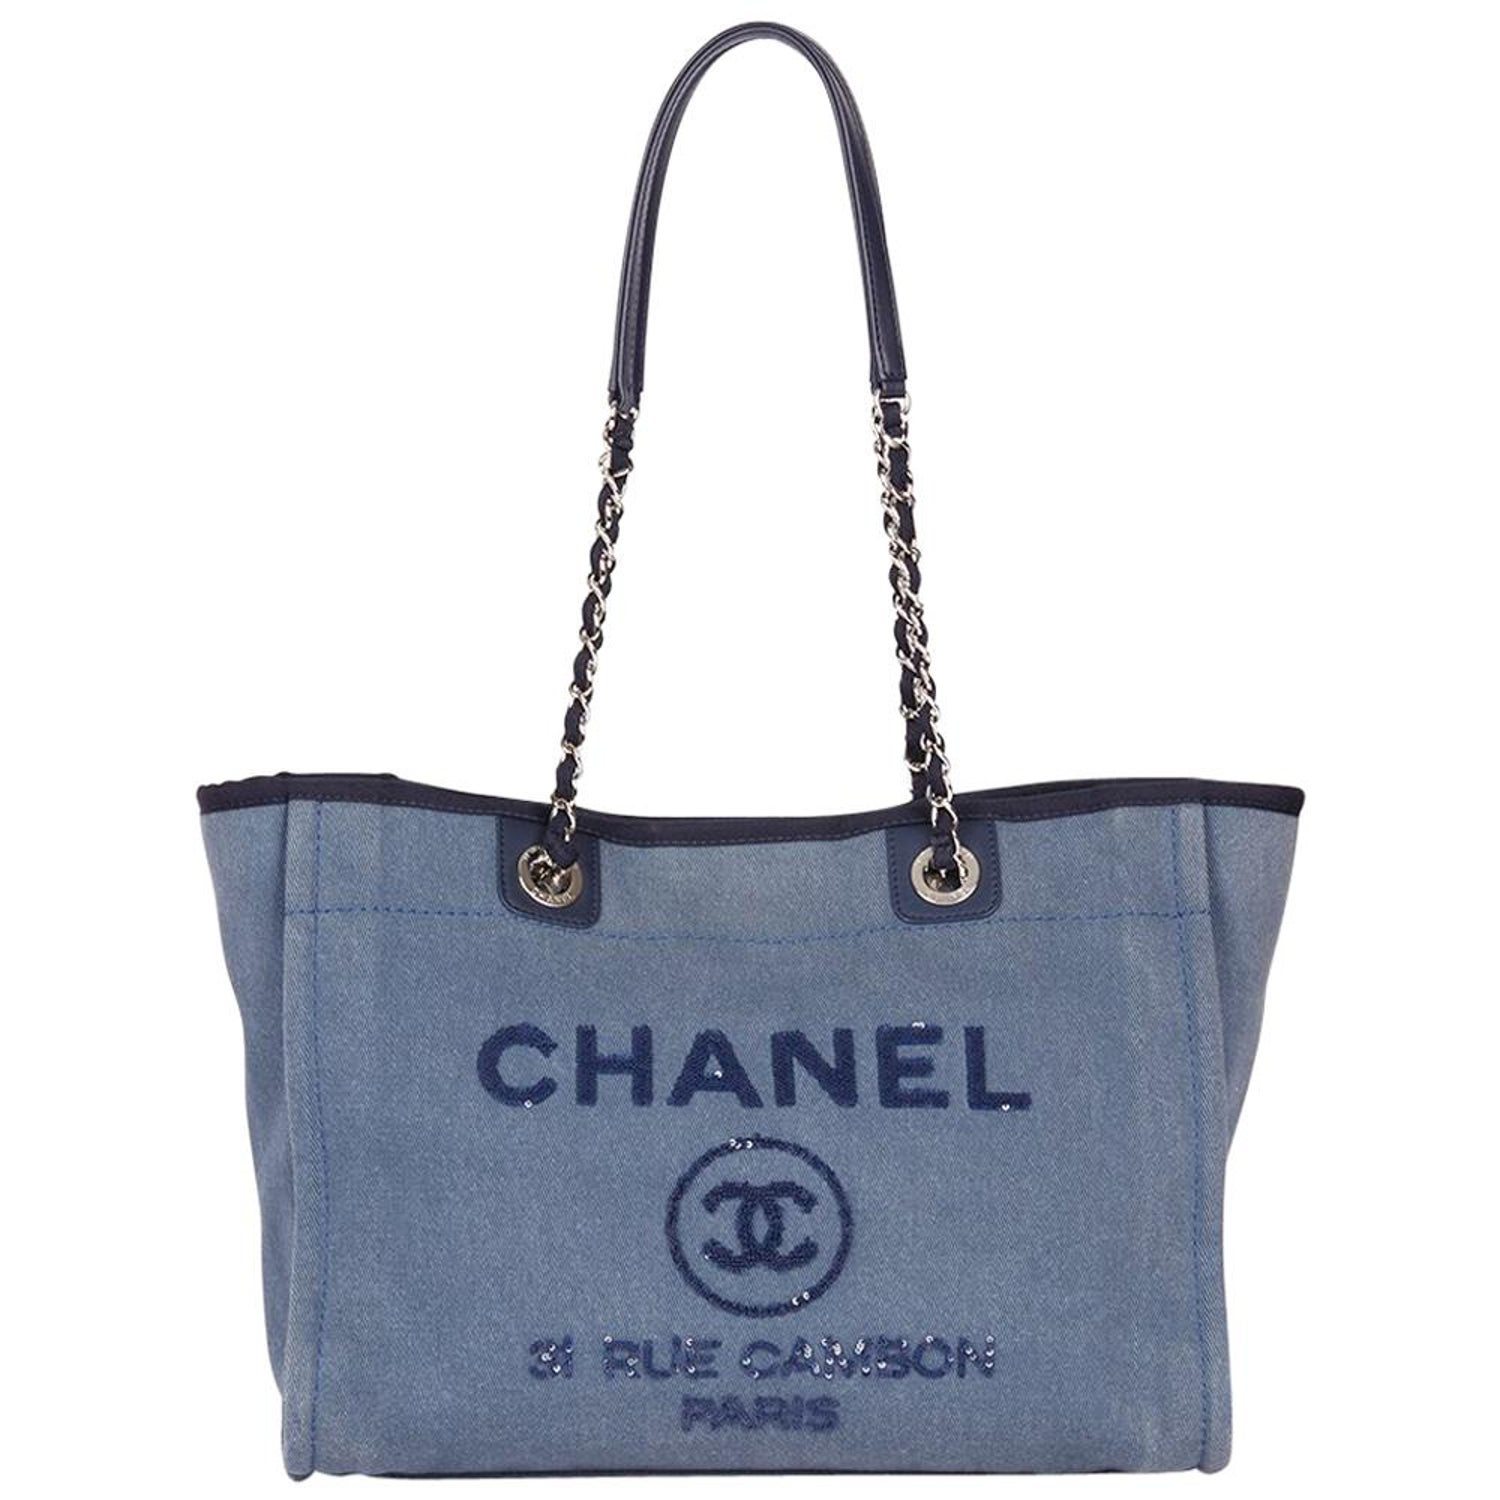 109469c2e86b 2017 Chanel Blue Sequin Embellished Denim Small Deauville Tote at 1stdibs